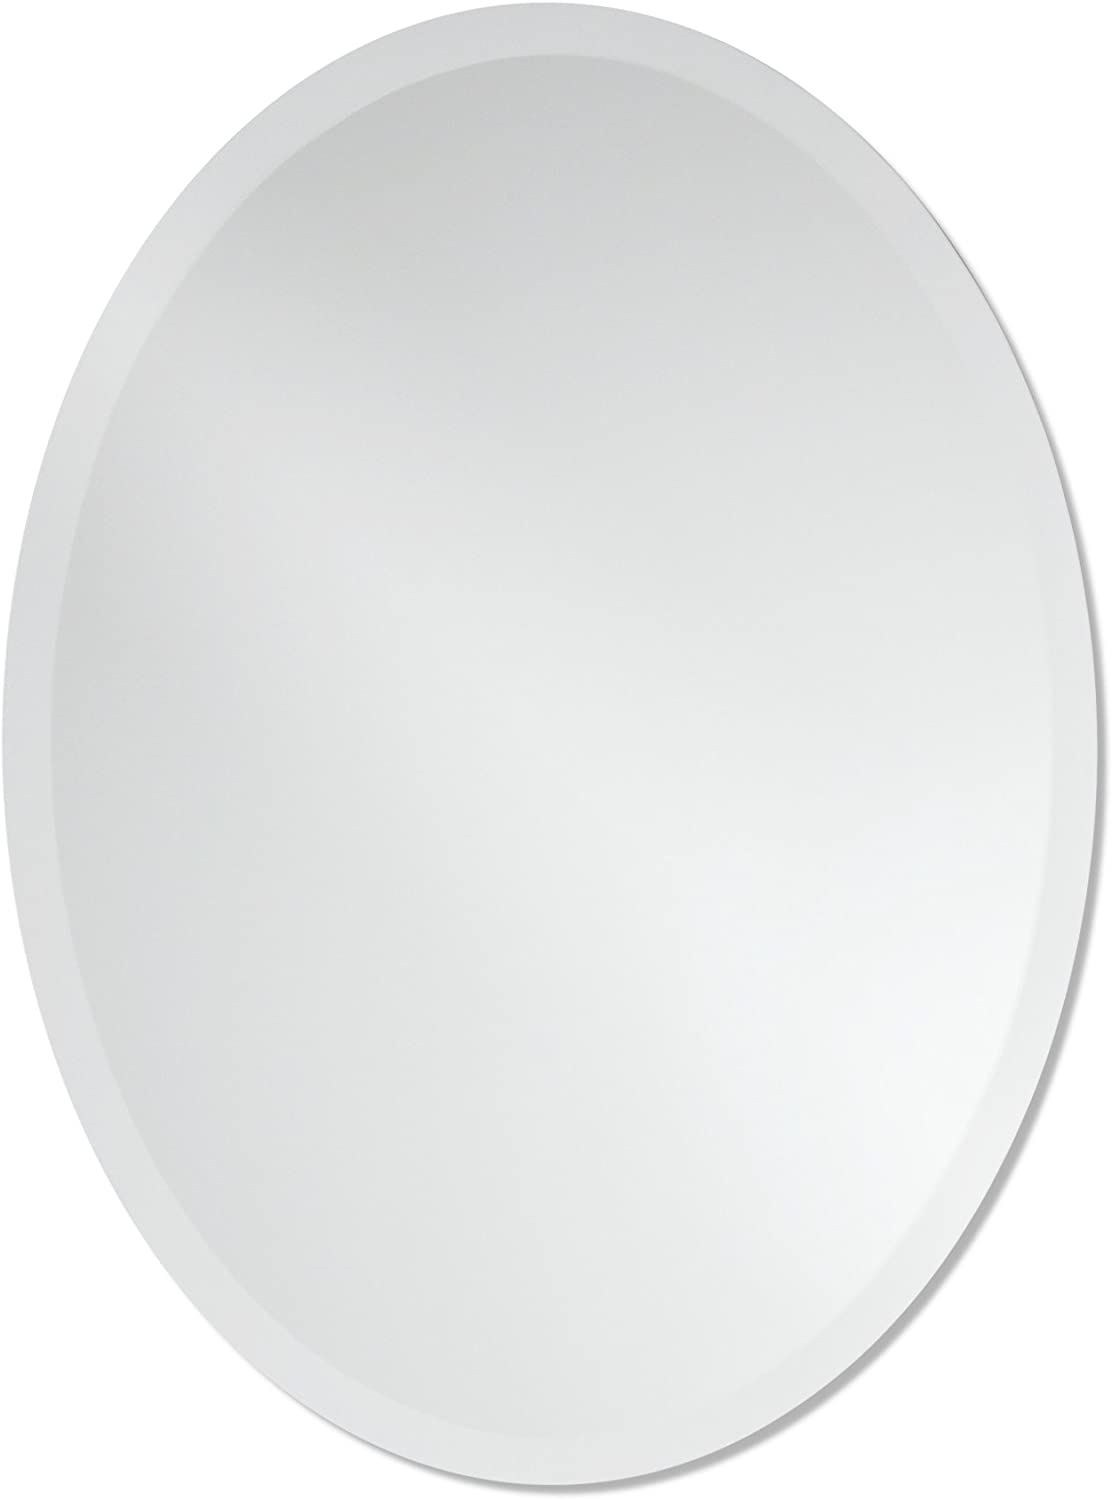 Small Frameless Beveled Oval Wall Mirror   Bathroom, Vanity, Bedroom Mirror   20-inch x 27-inch